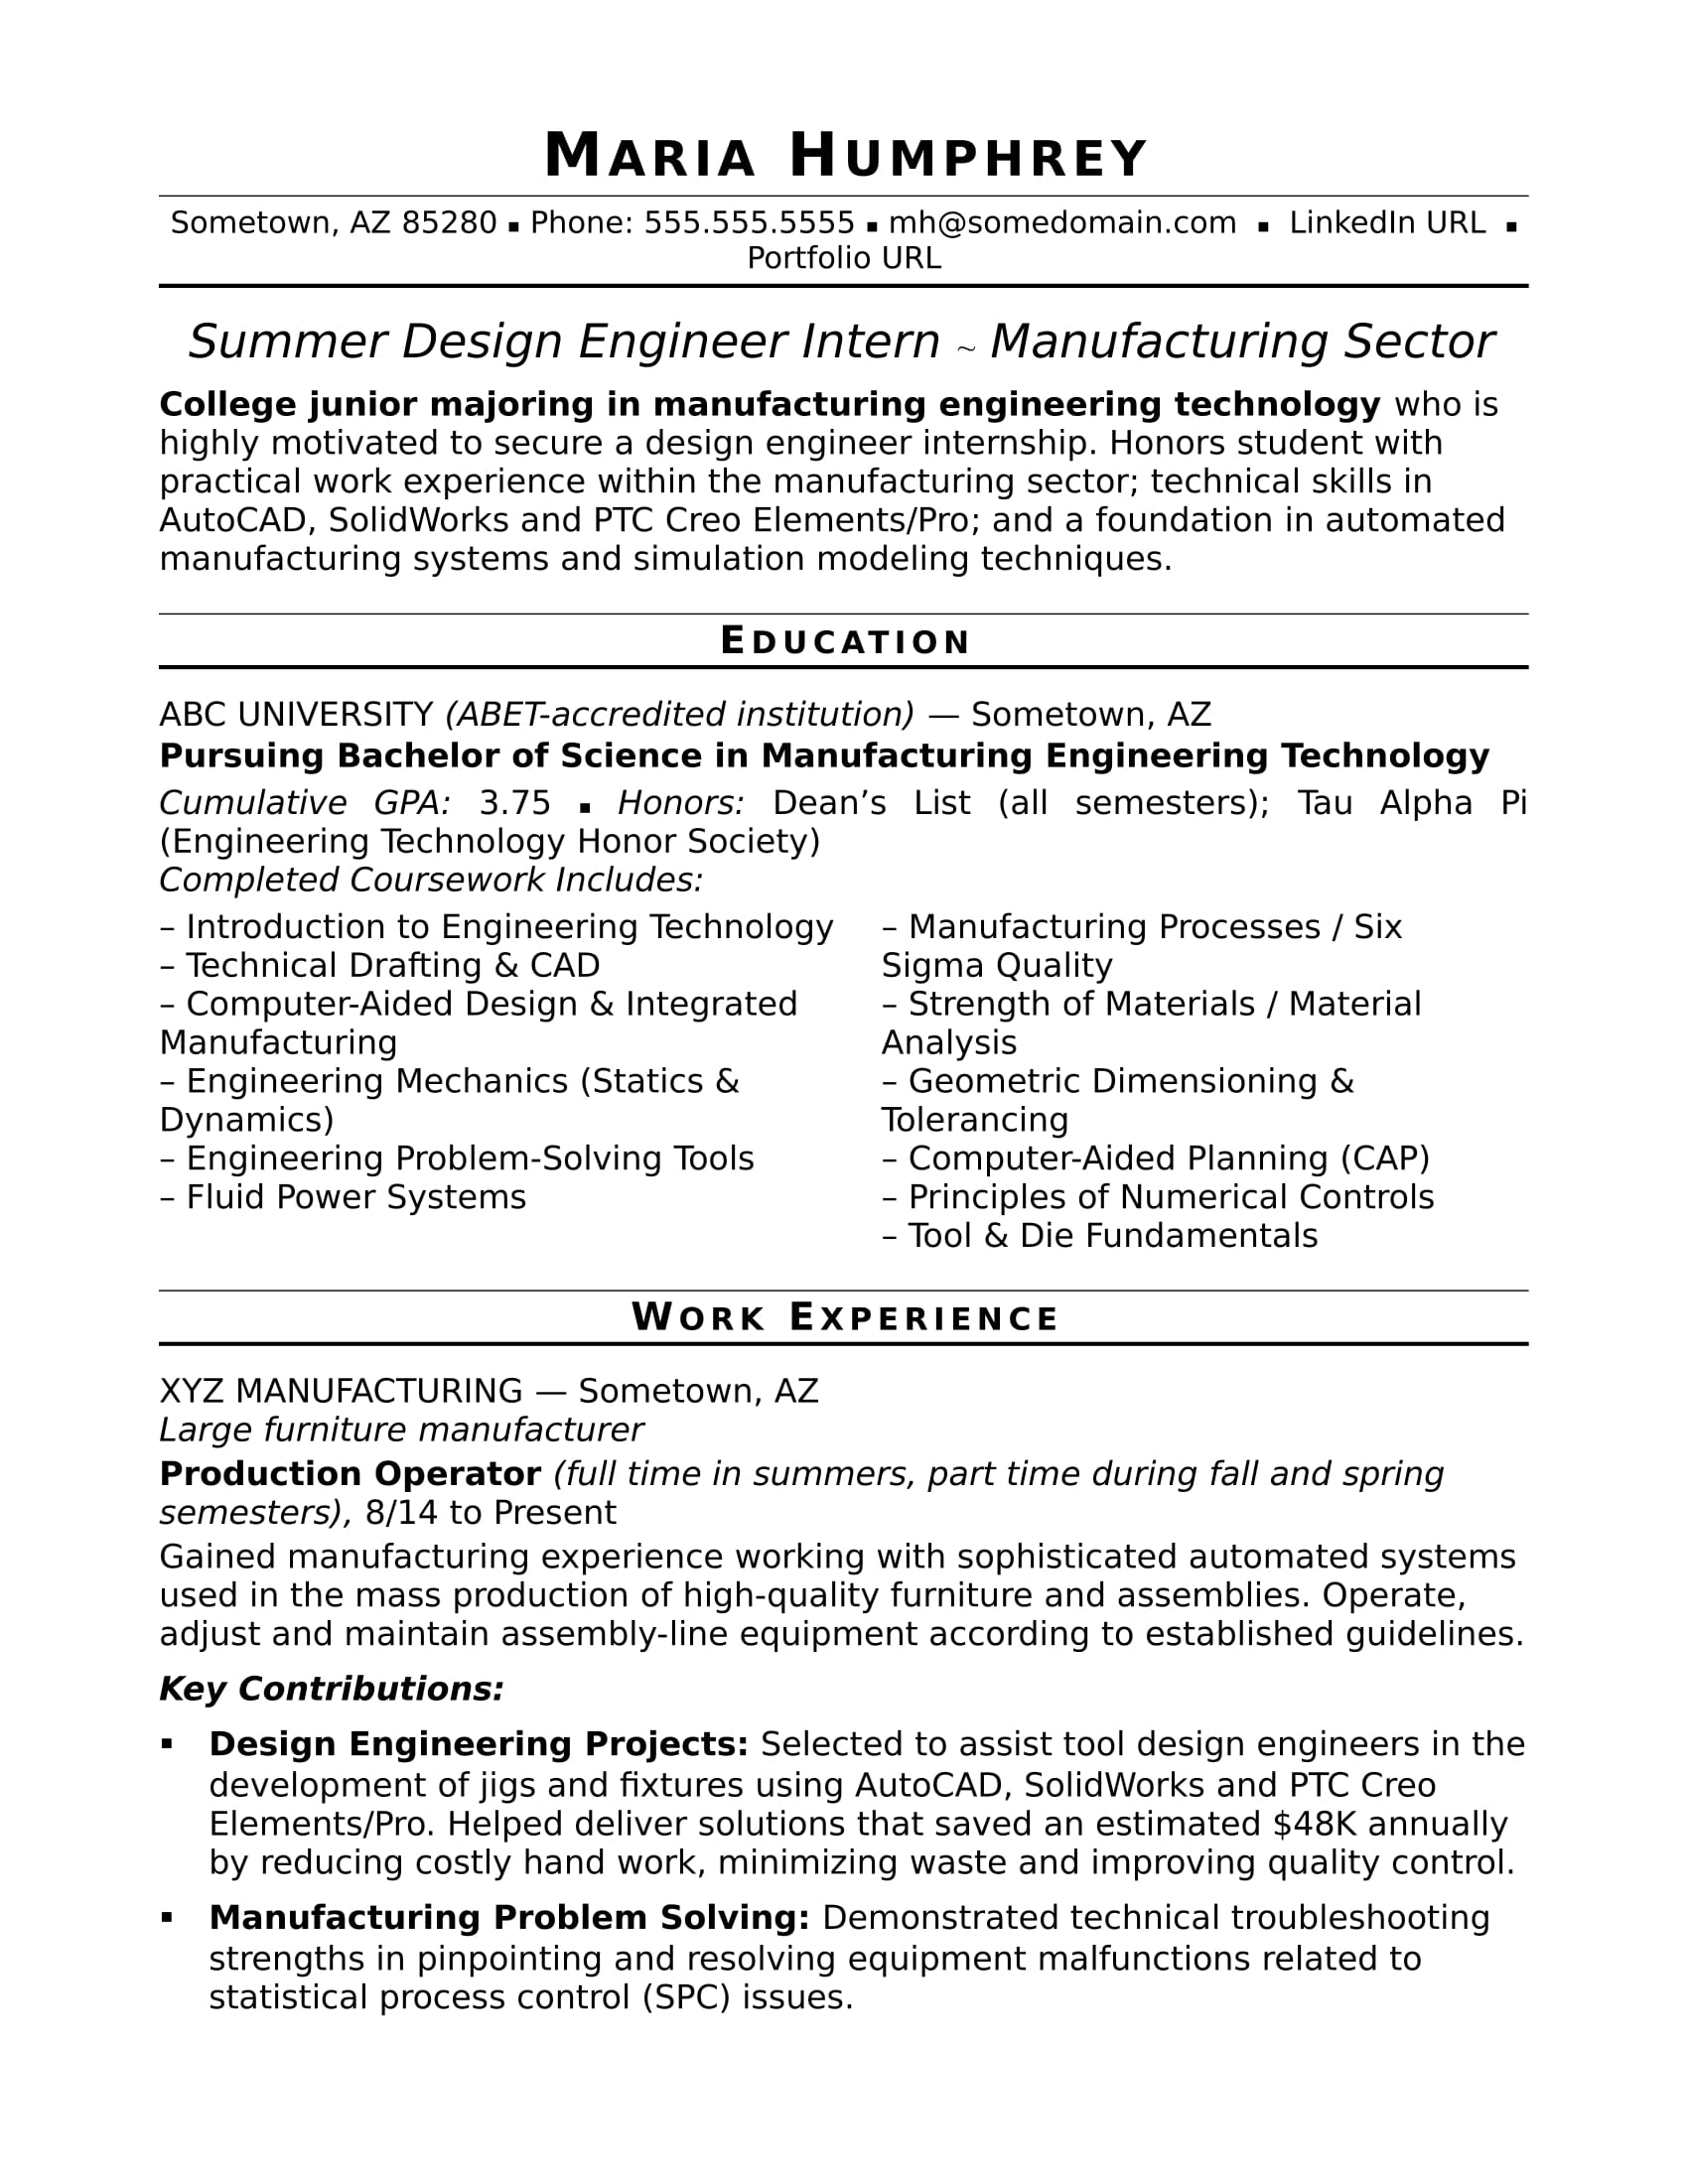 sample resume for an entry level design engineer - Engineering Internship Resume